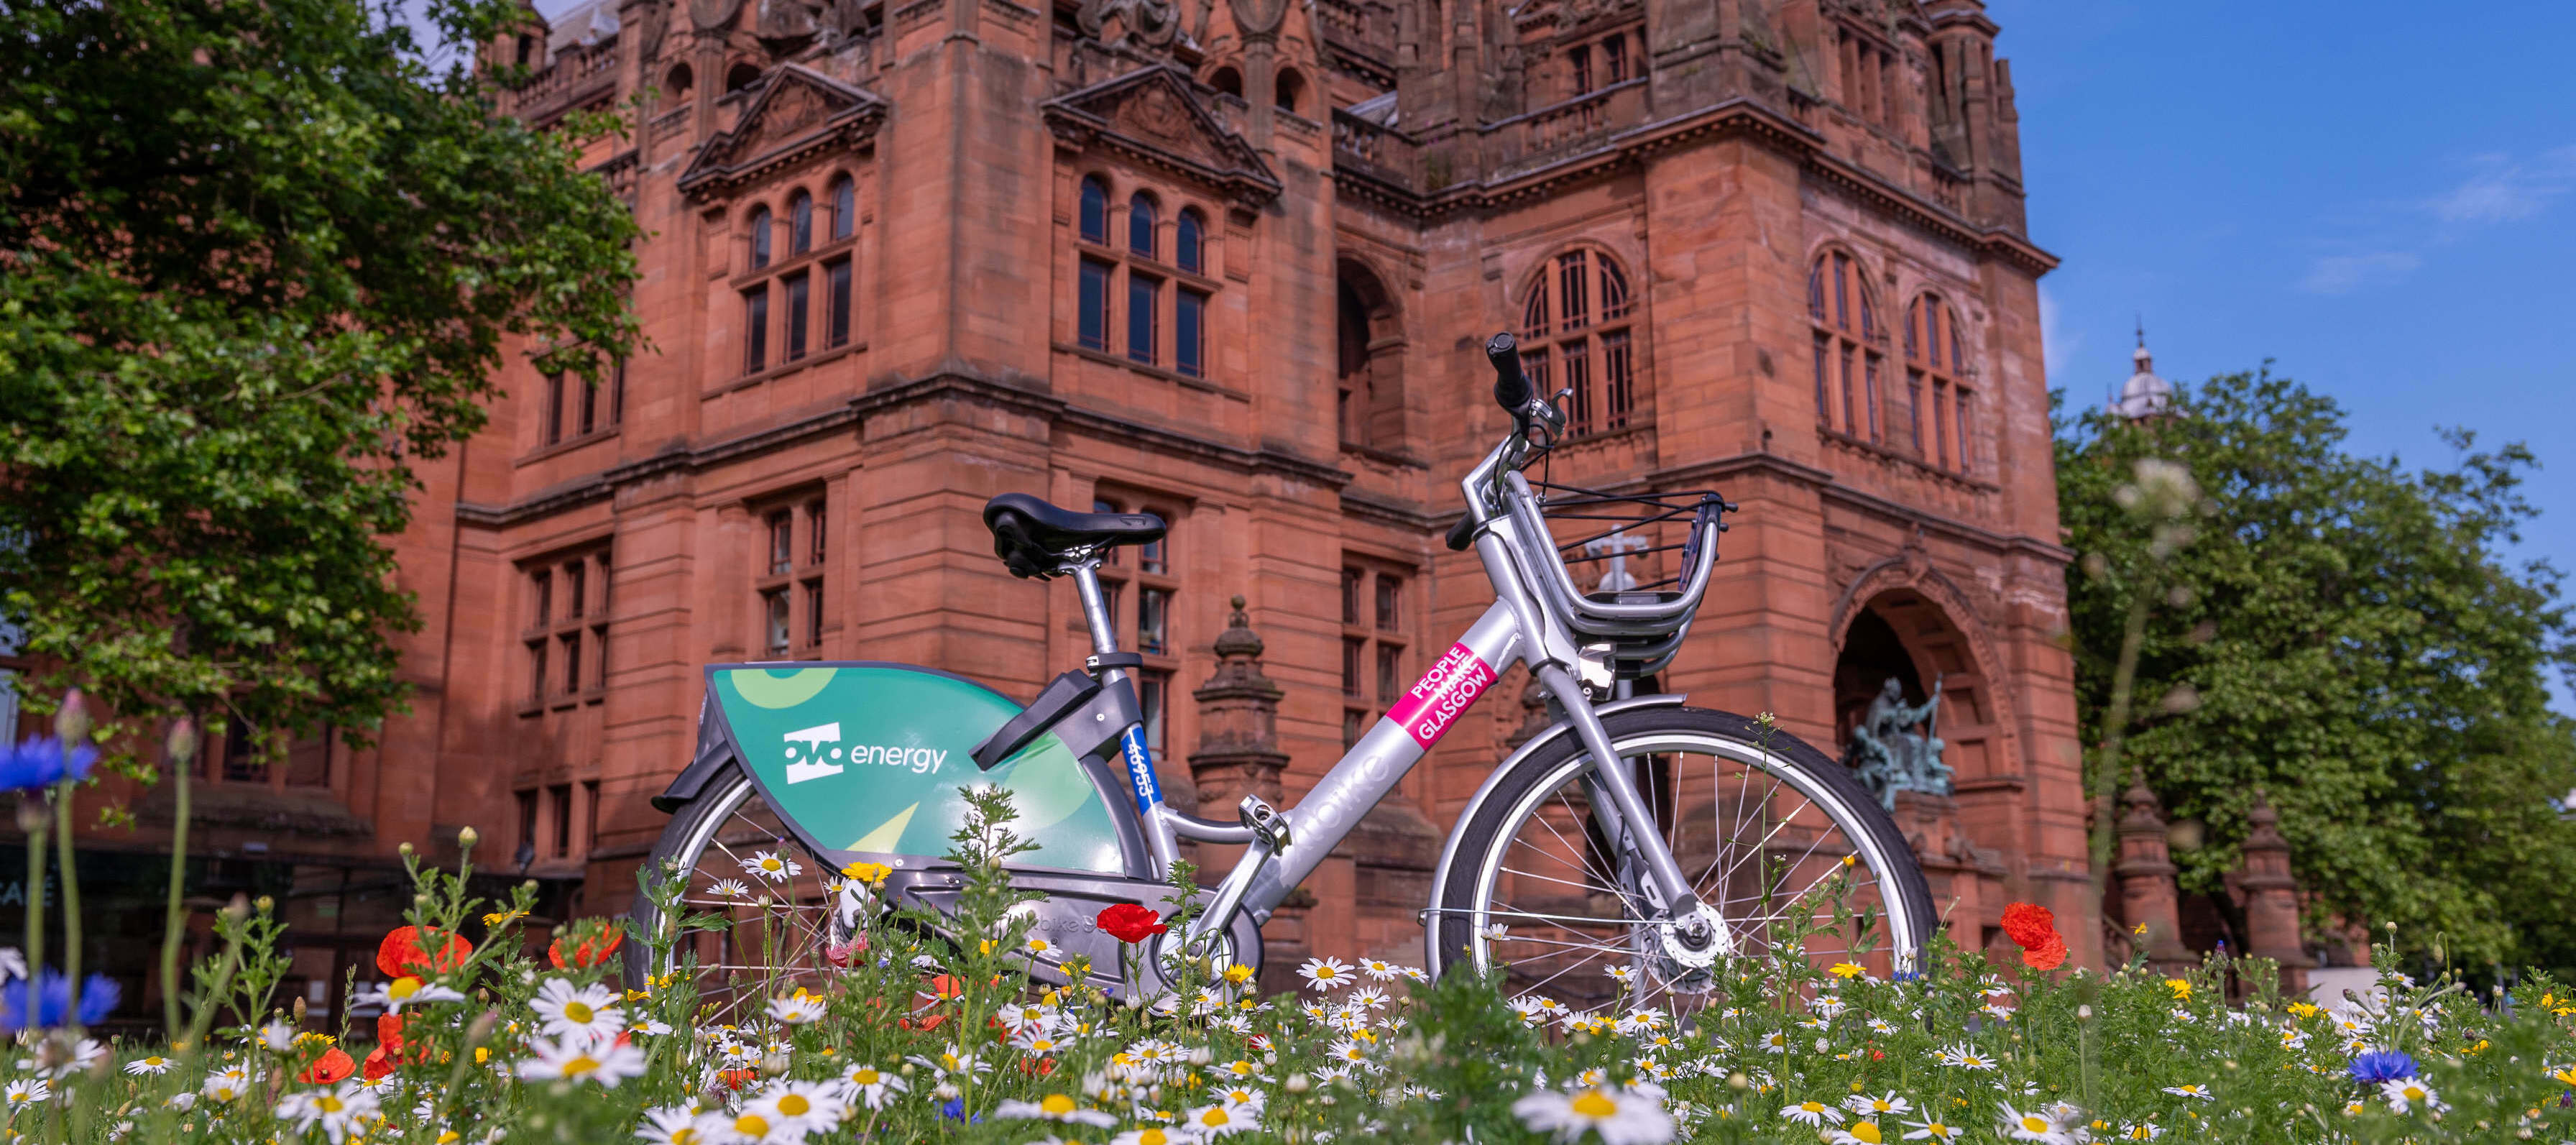 Cycling in the City with OVO Bikes - My two-wheeling pearls of wisdom